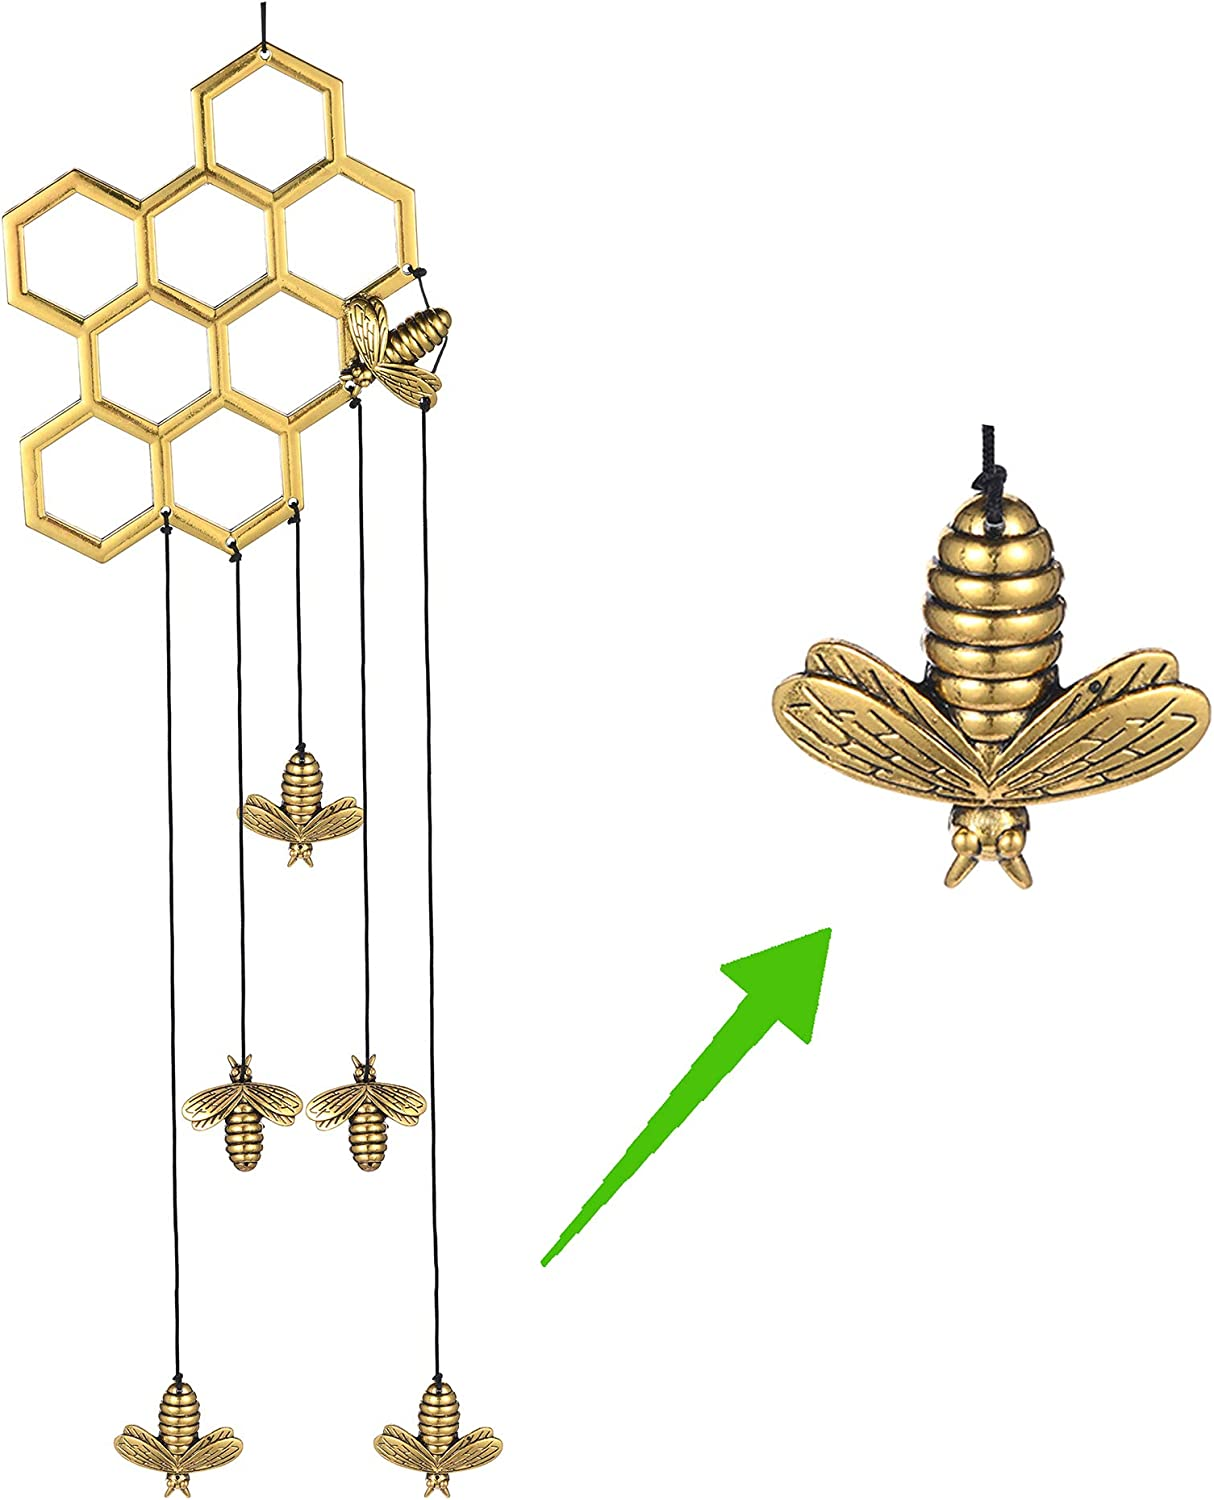 Memgift Bee Ranking Courier shipping free shipping TOP17 Honeycomb Wind Chimes Indoor Outdoor Gar for Outside